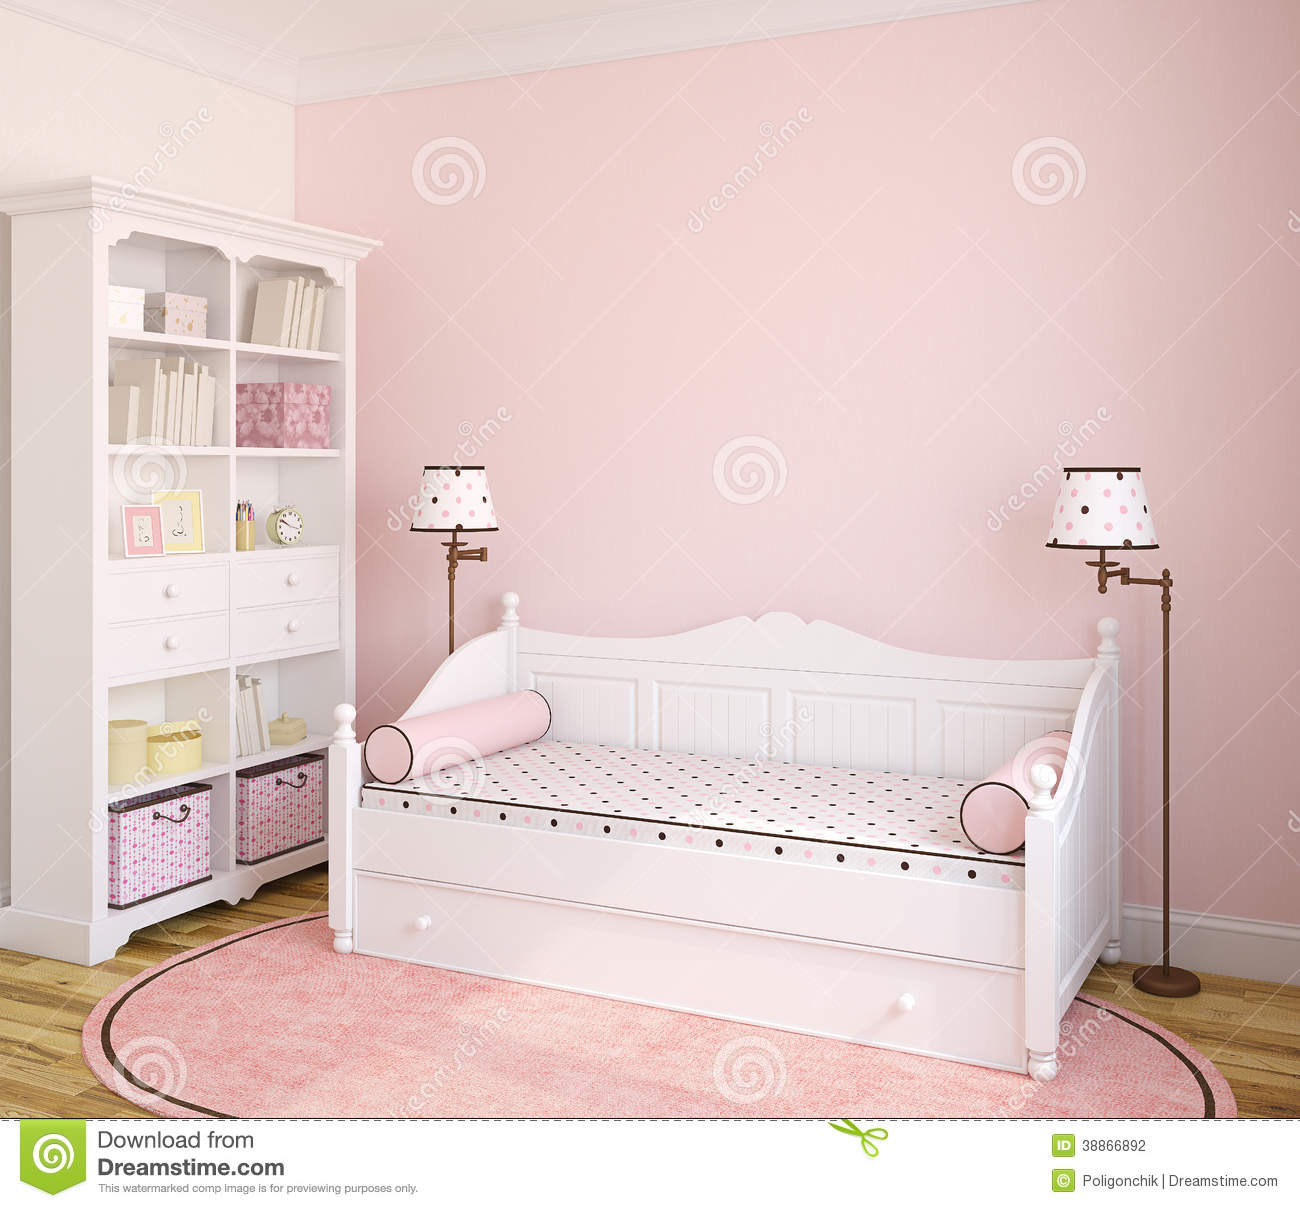 Interior of toddler room stock illustration image of Pink room with white furniture